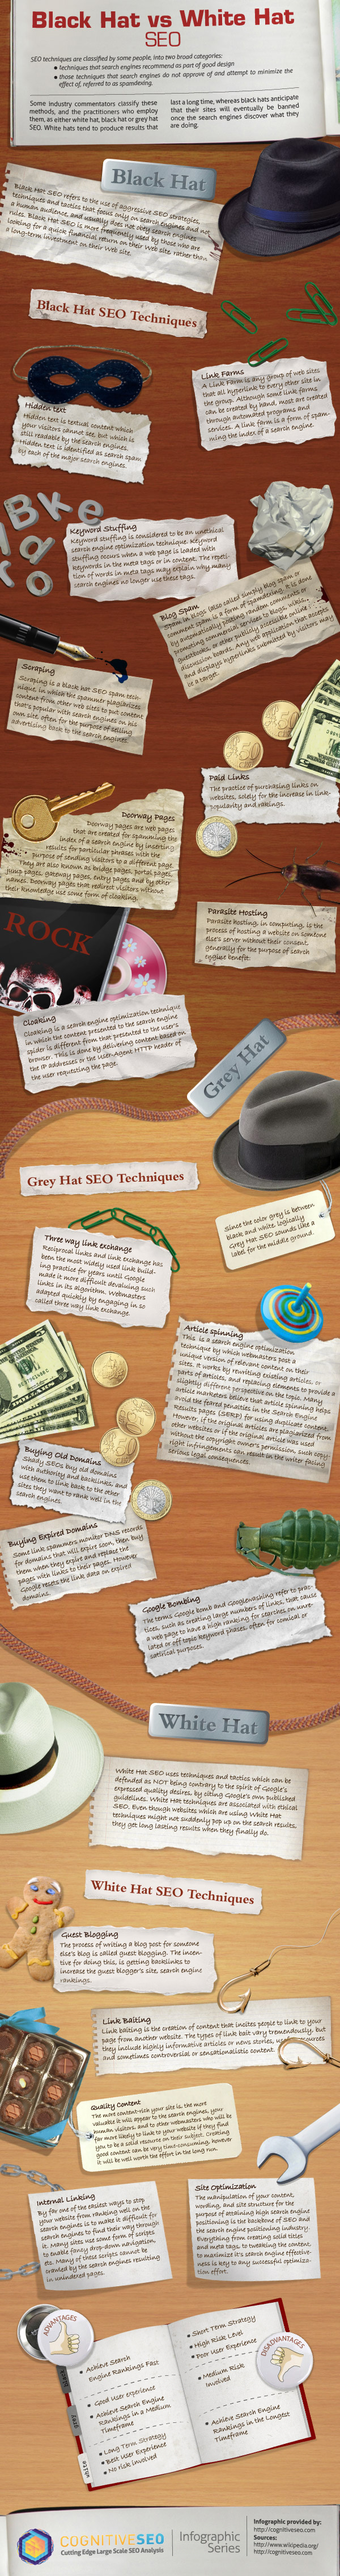 Black Hat vs White Hat SEO - Infographic